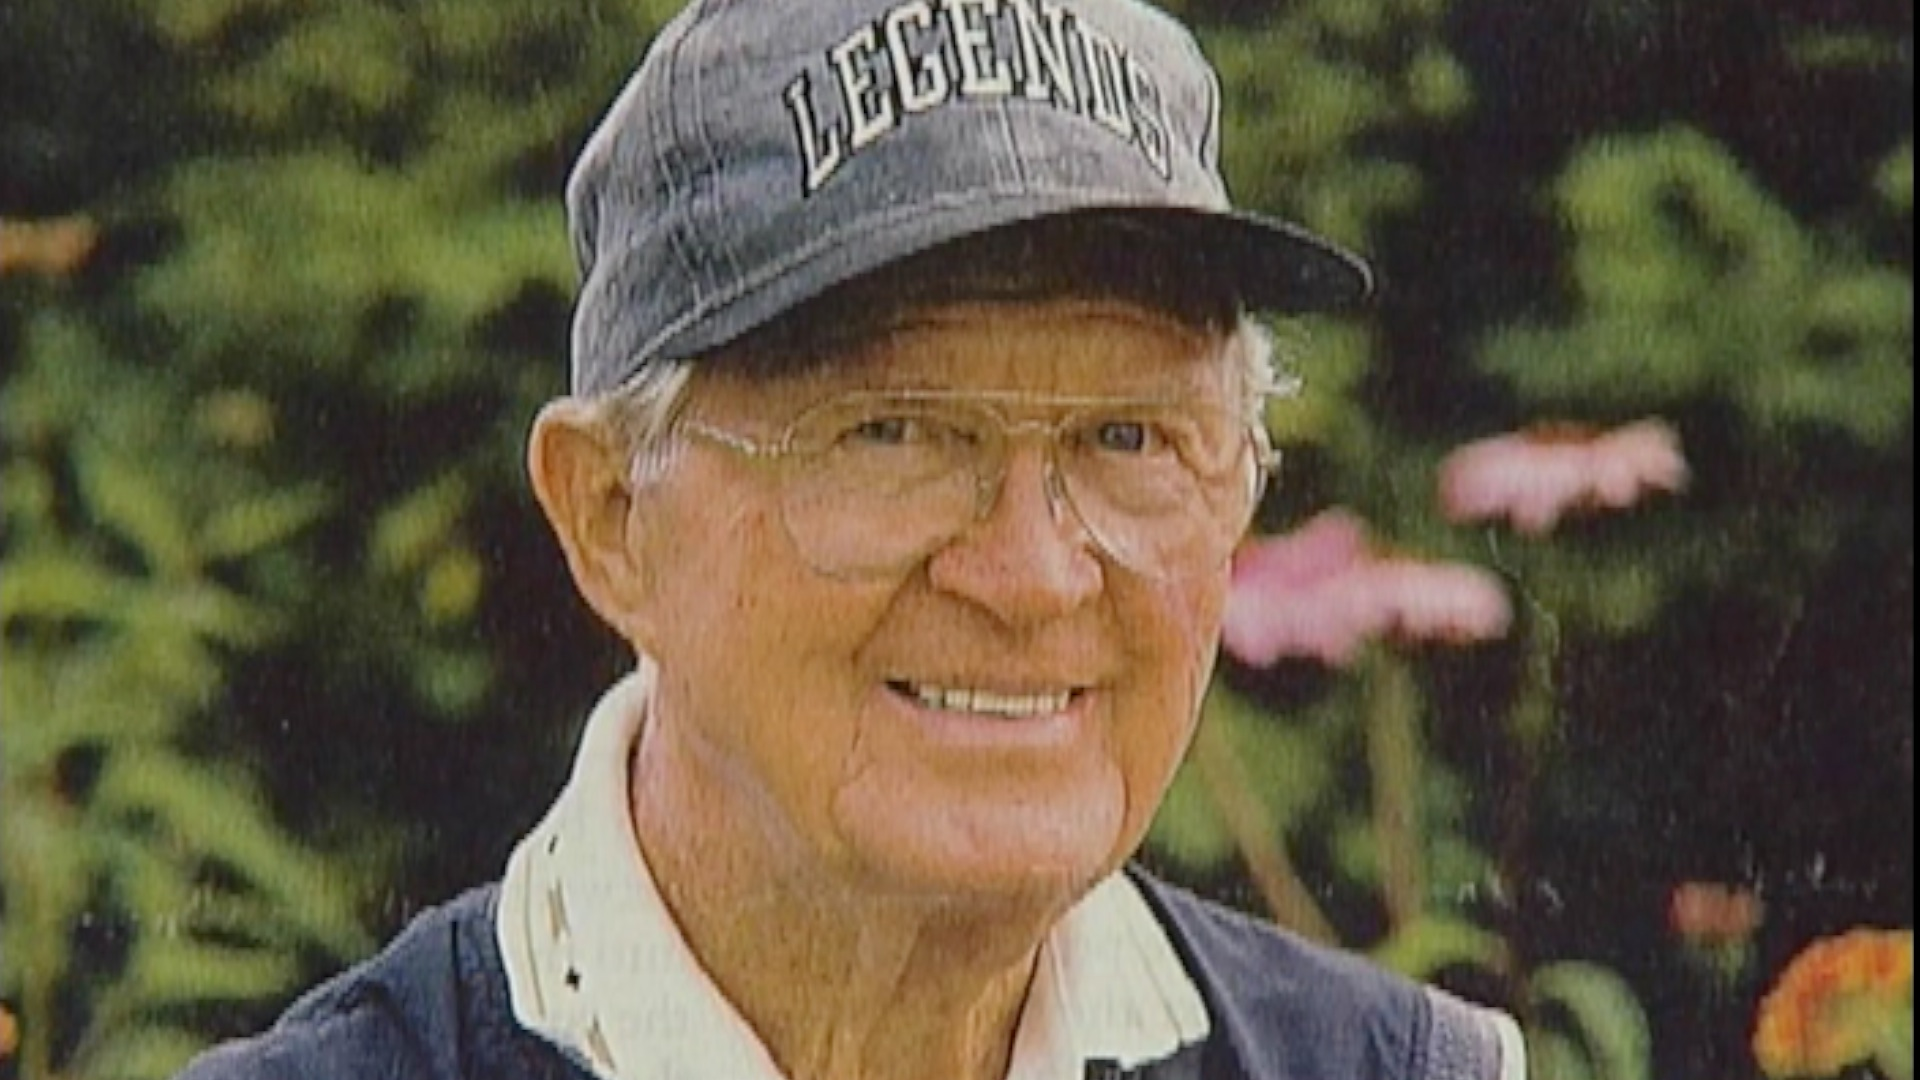 Golfing Great and Centenarian – Ed Ervasti